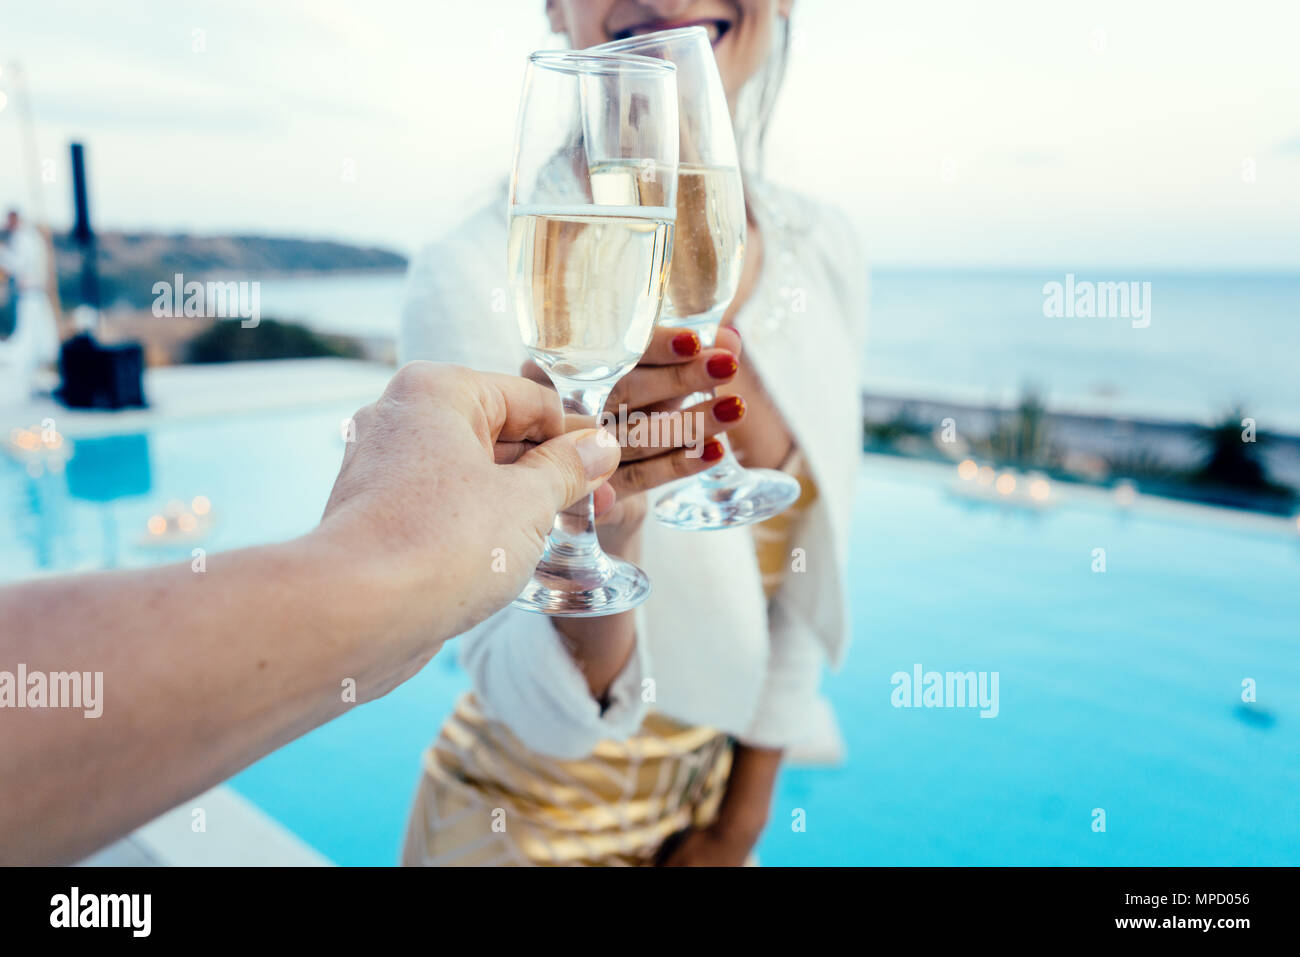 Woman and man clinking glasses at pool party - Stock Image